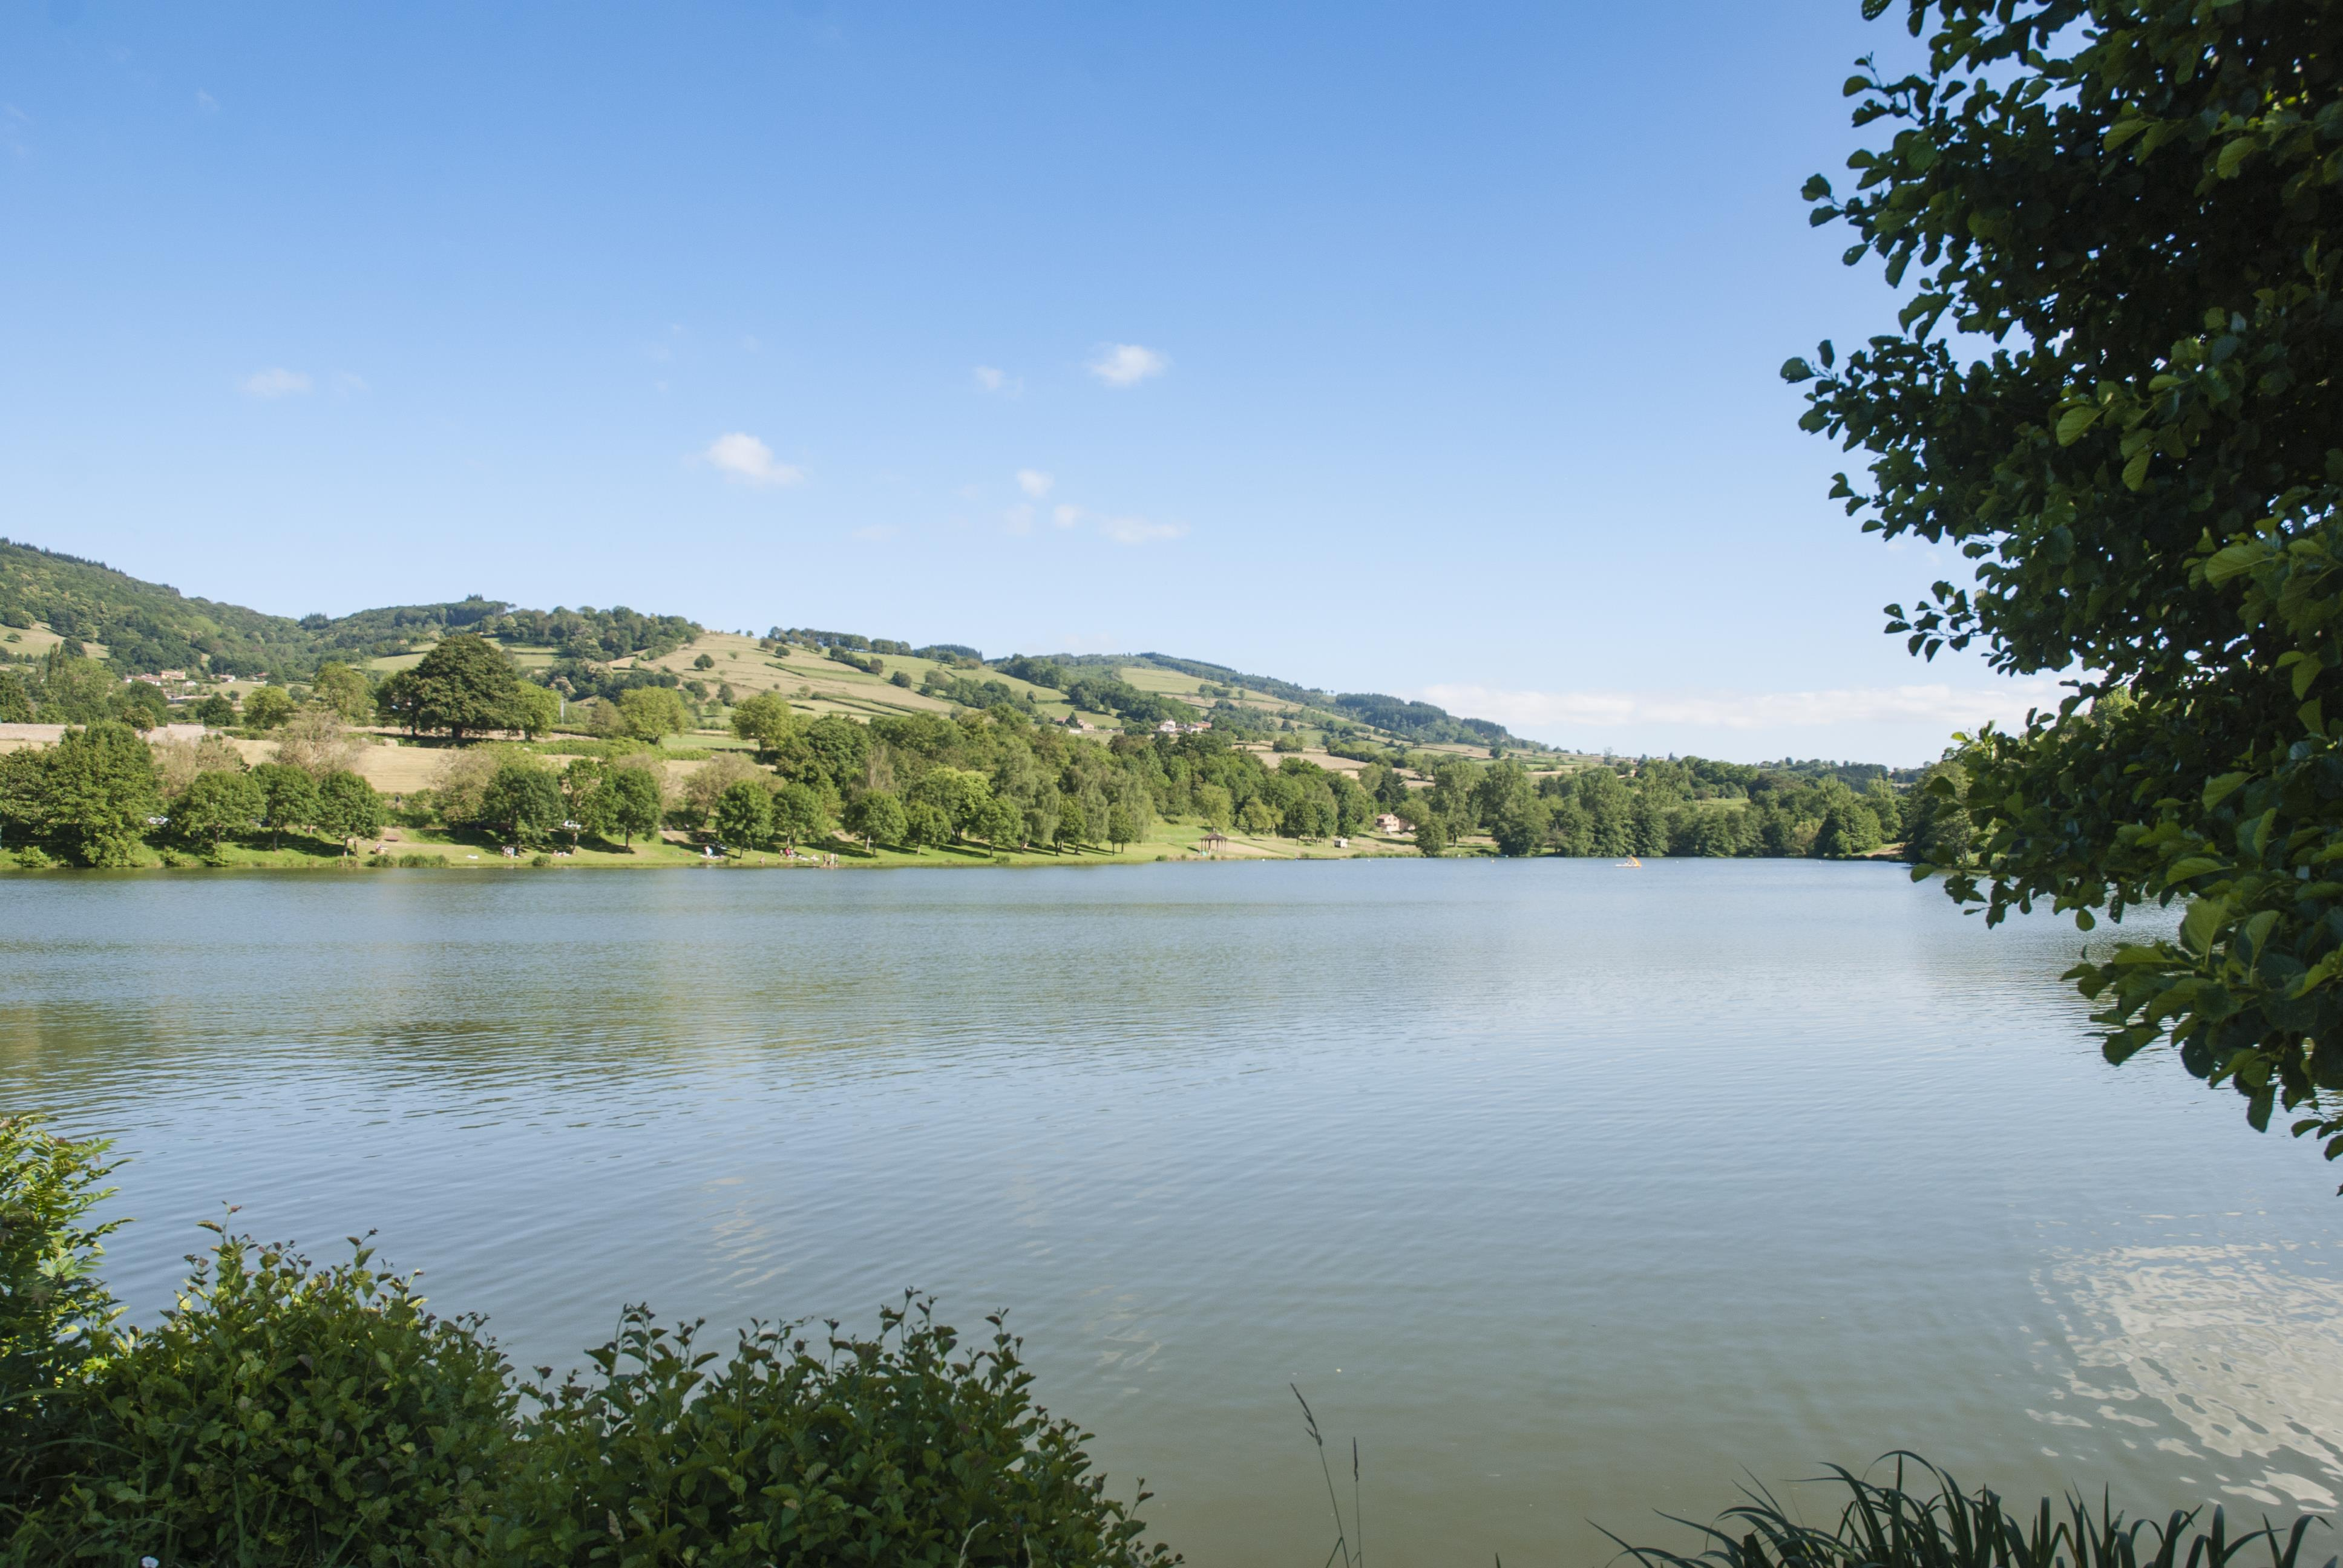 Etablissement Camping Le Lac De Saint Point - St. Point